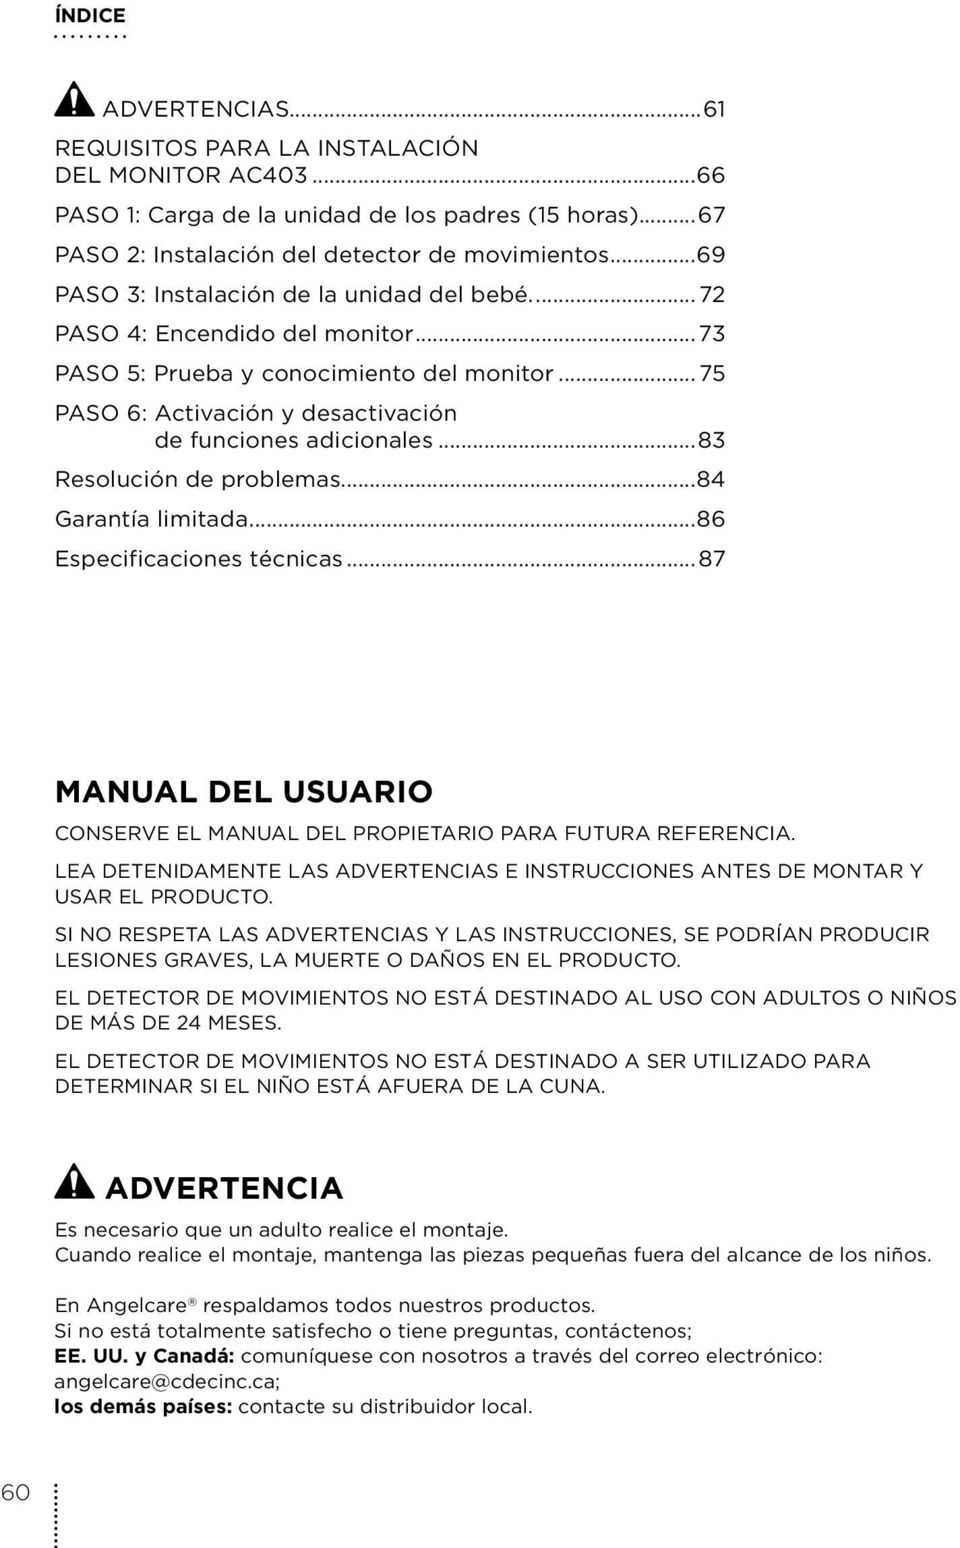 ..83 Resolución de problemas...84 Garantía limitada...86 specificaciones técnicas...87 MANUAL DL USUARIO CONSRV L MANUAL DL PROPITARIO PARA FUTURA RFRNCIA.